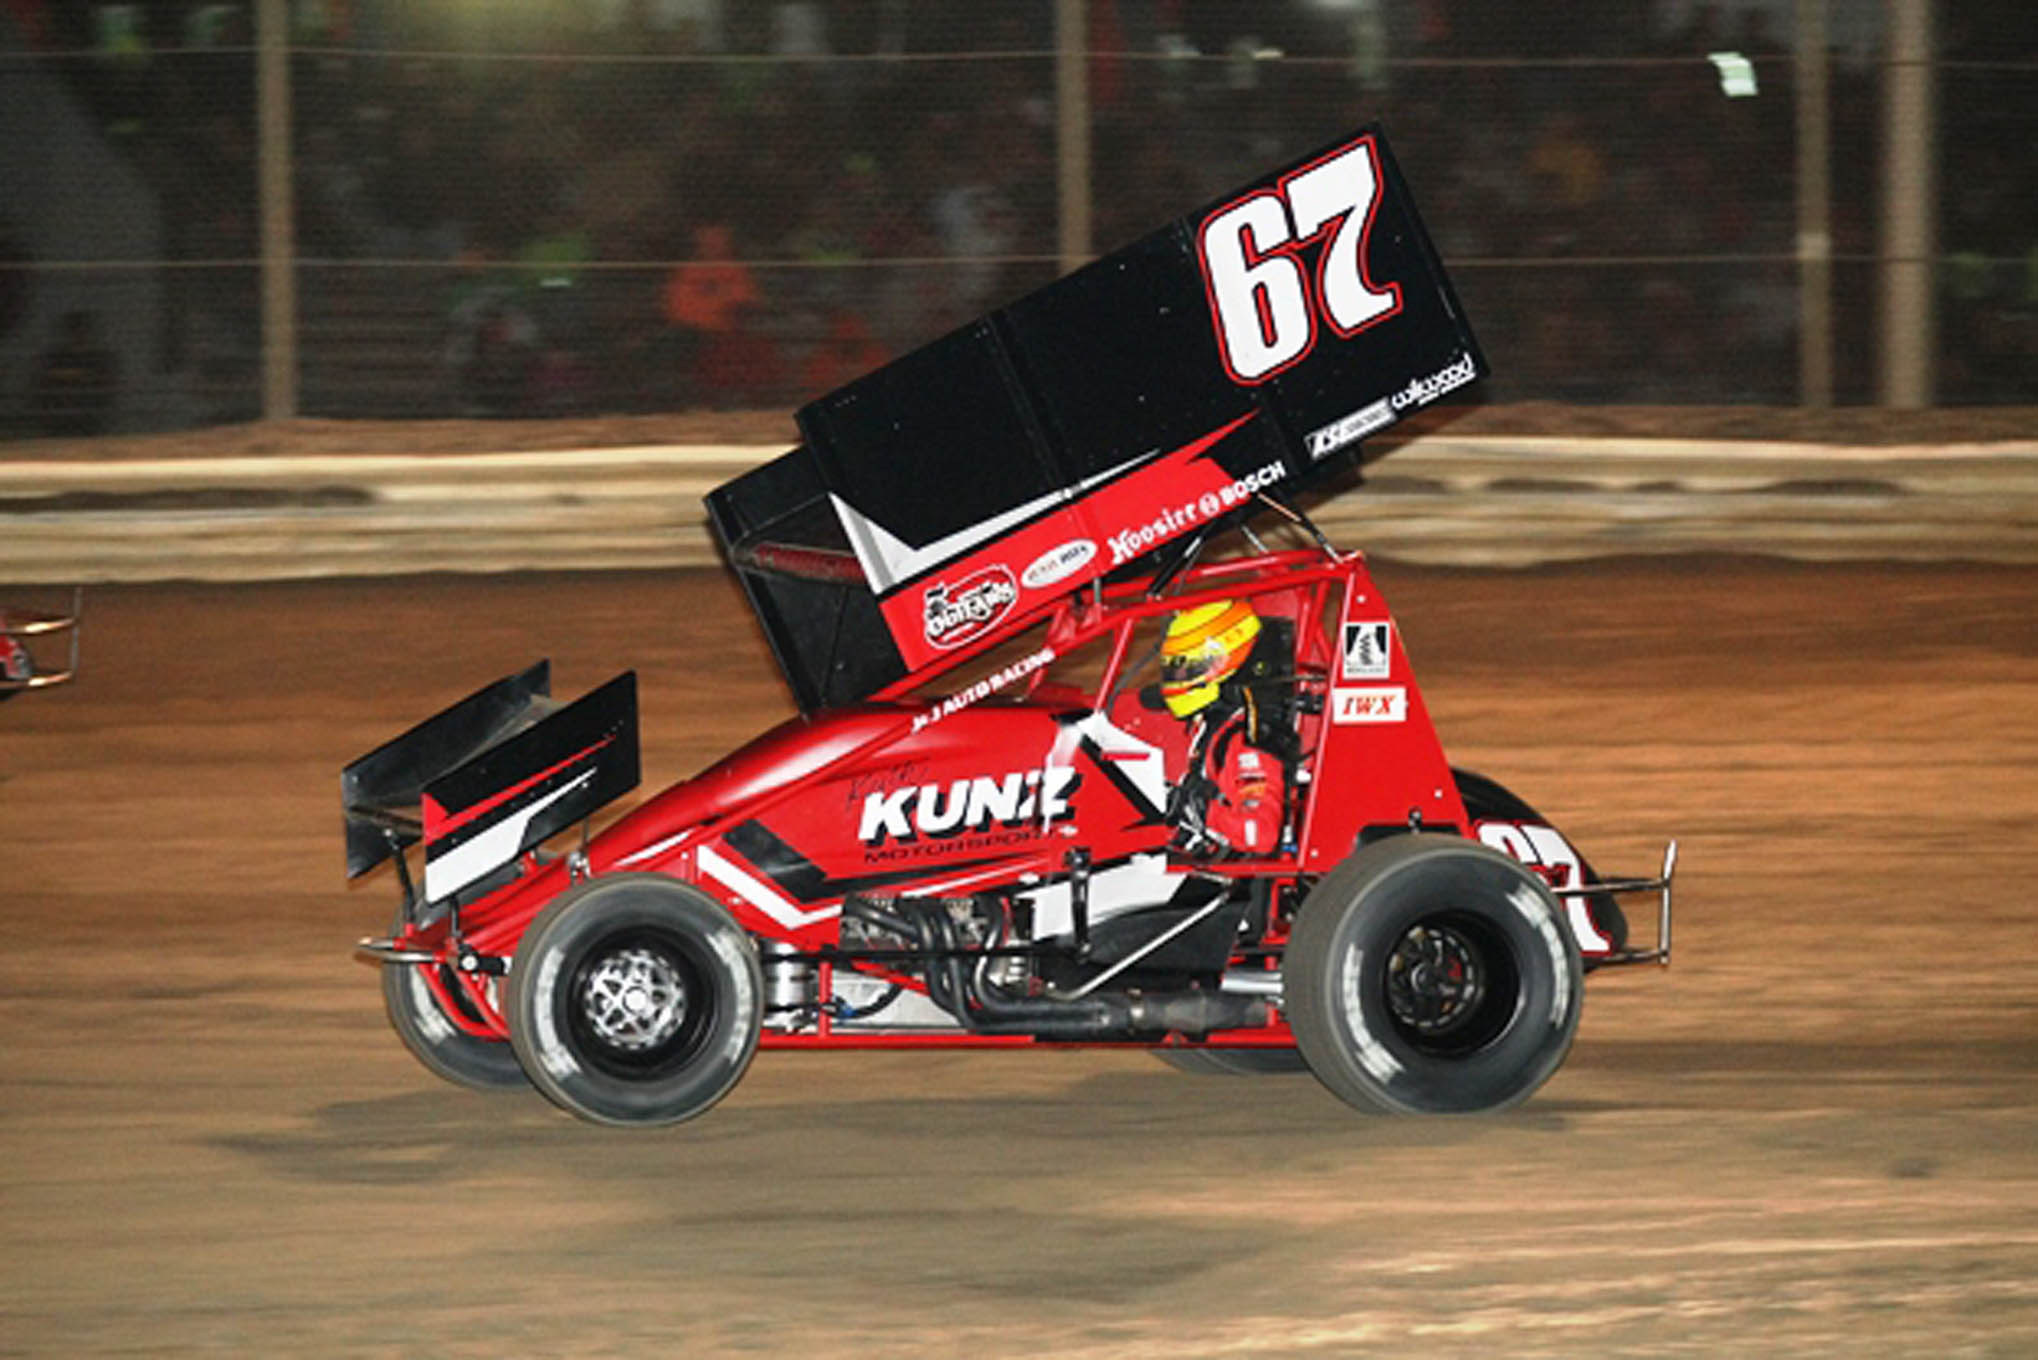 Thorson finished 14th in the A Main.